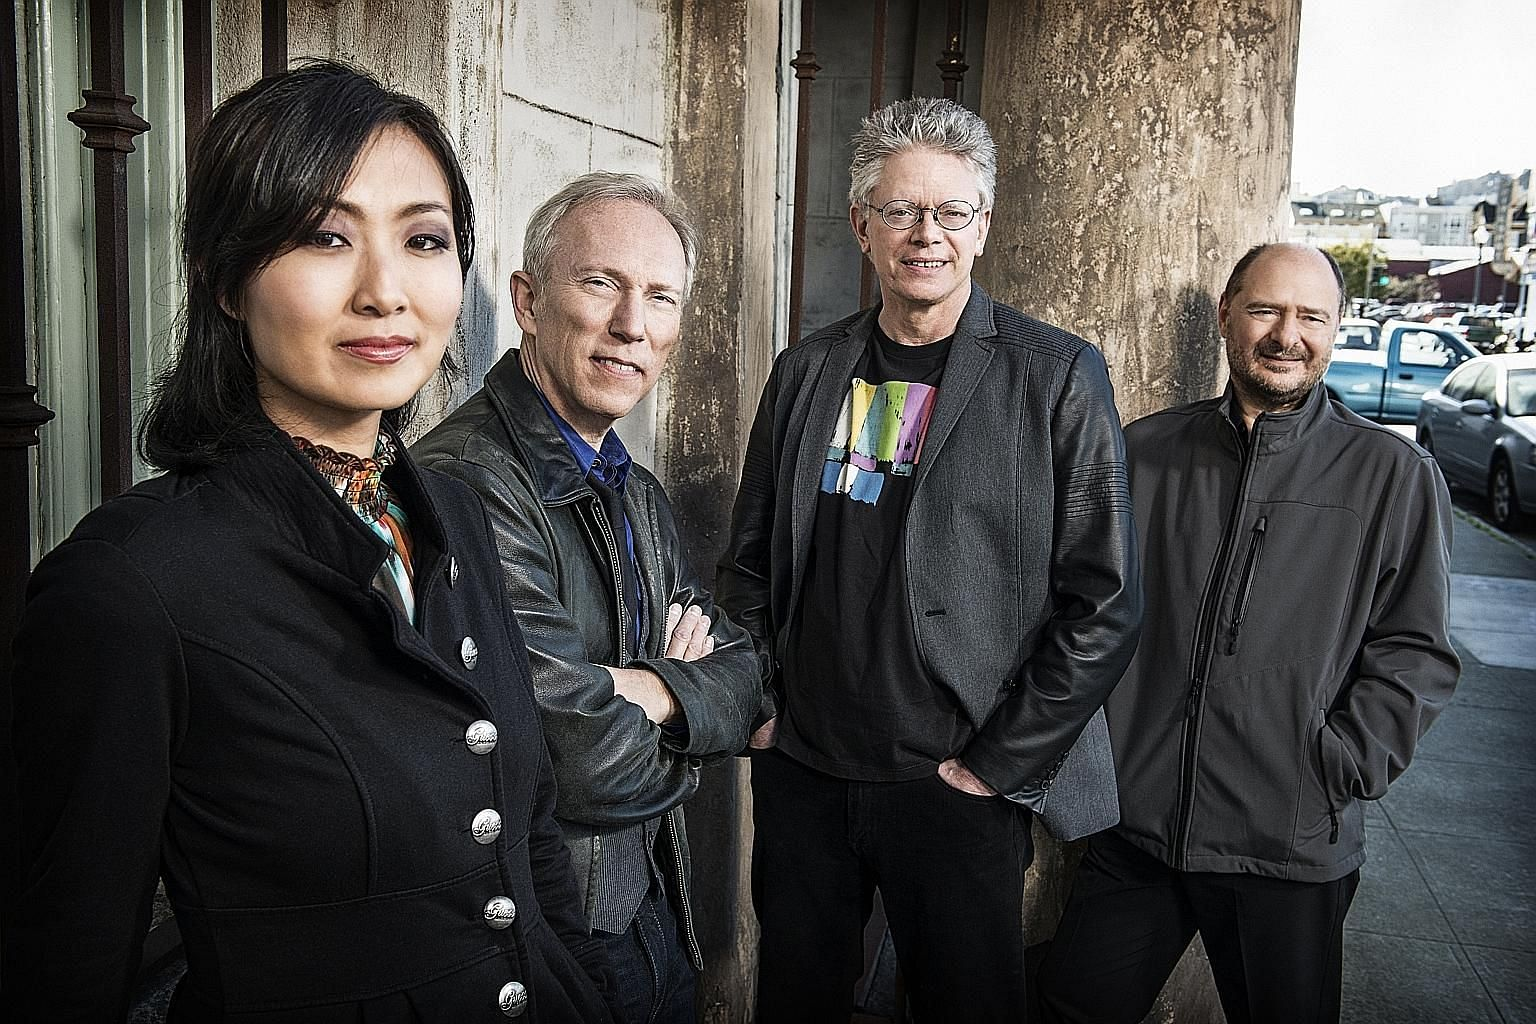 American string ensemble Kronos Quartet, comprising (from far left) Sunny Yang, Hank Dutt, David Harrington and John Sherba, will give their new work My Lai its Asia-Pacific premiere during the festival.